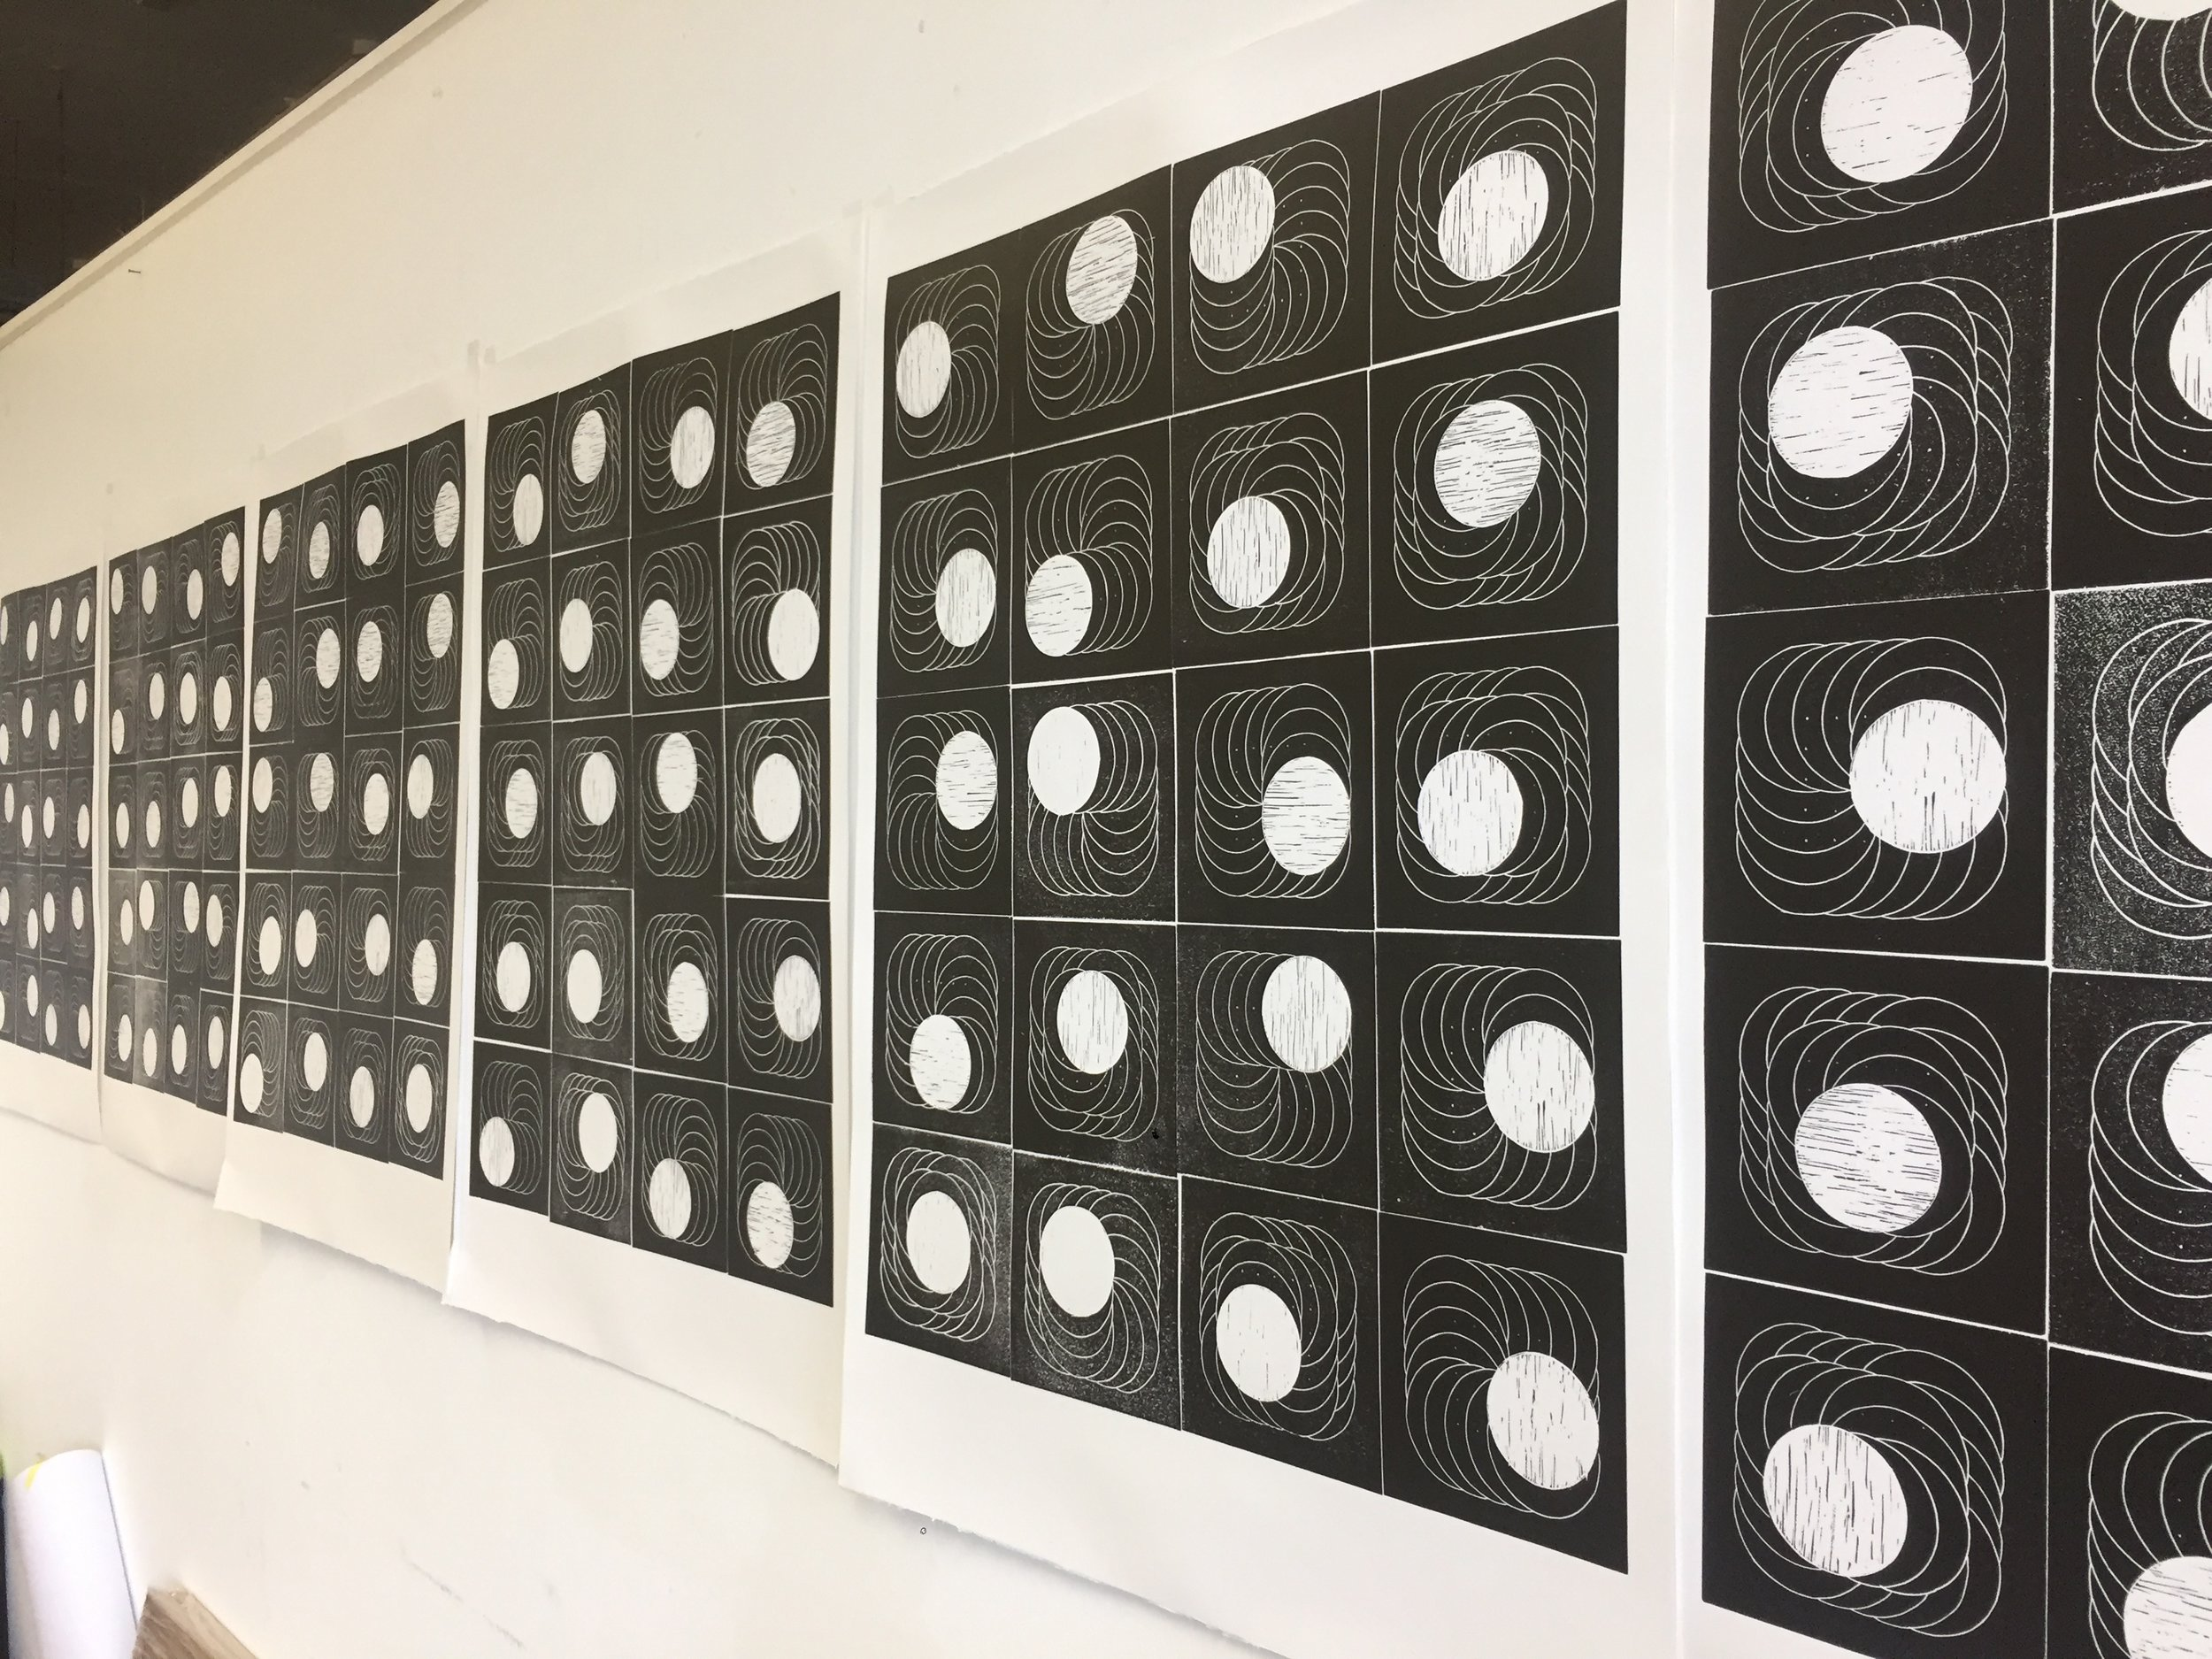 Series of lino cuts - controlled disorder dot pattern/electrobeam lithograpy.